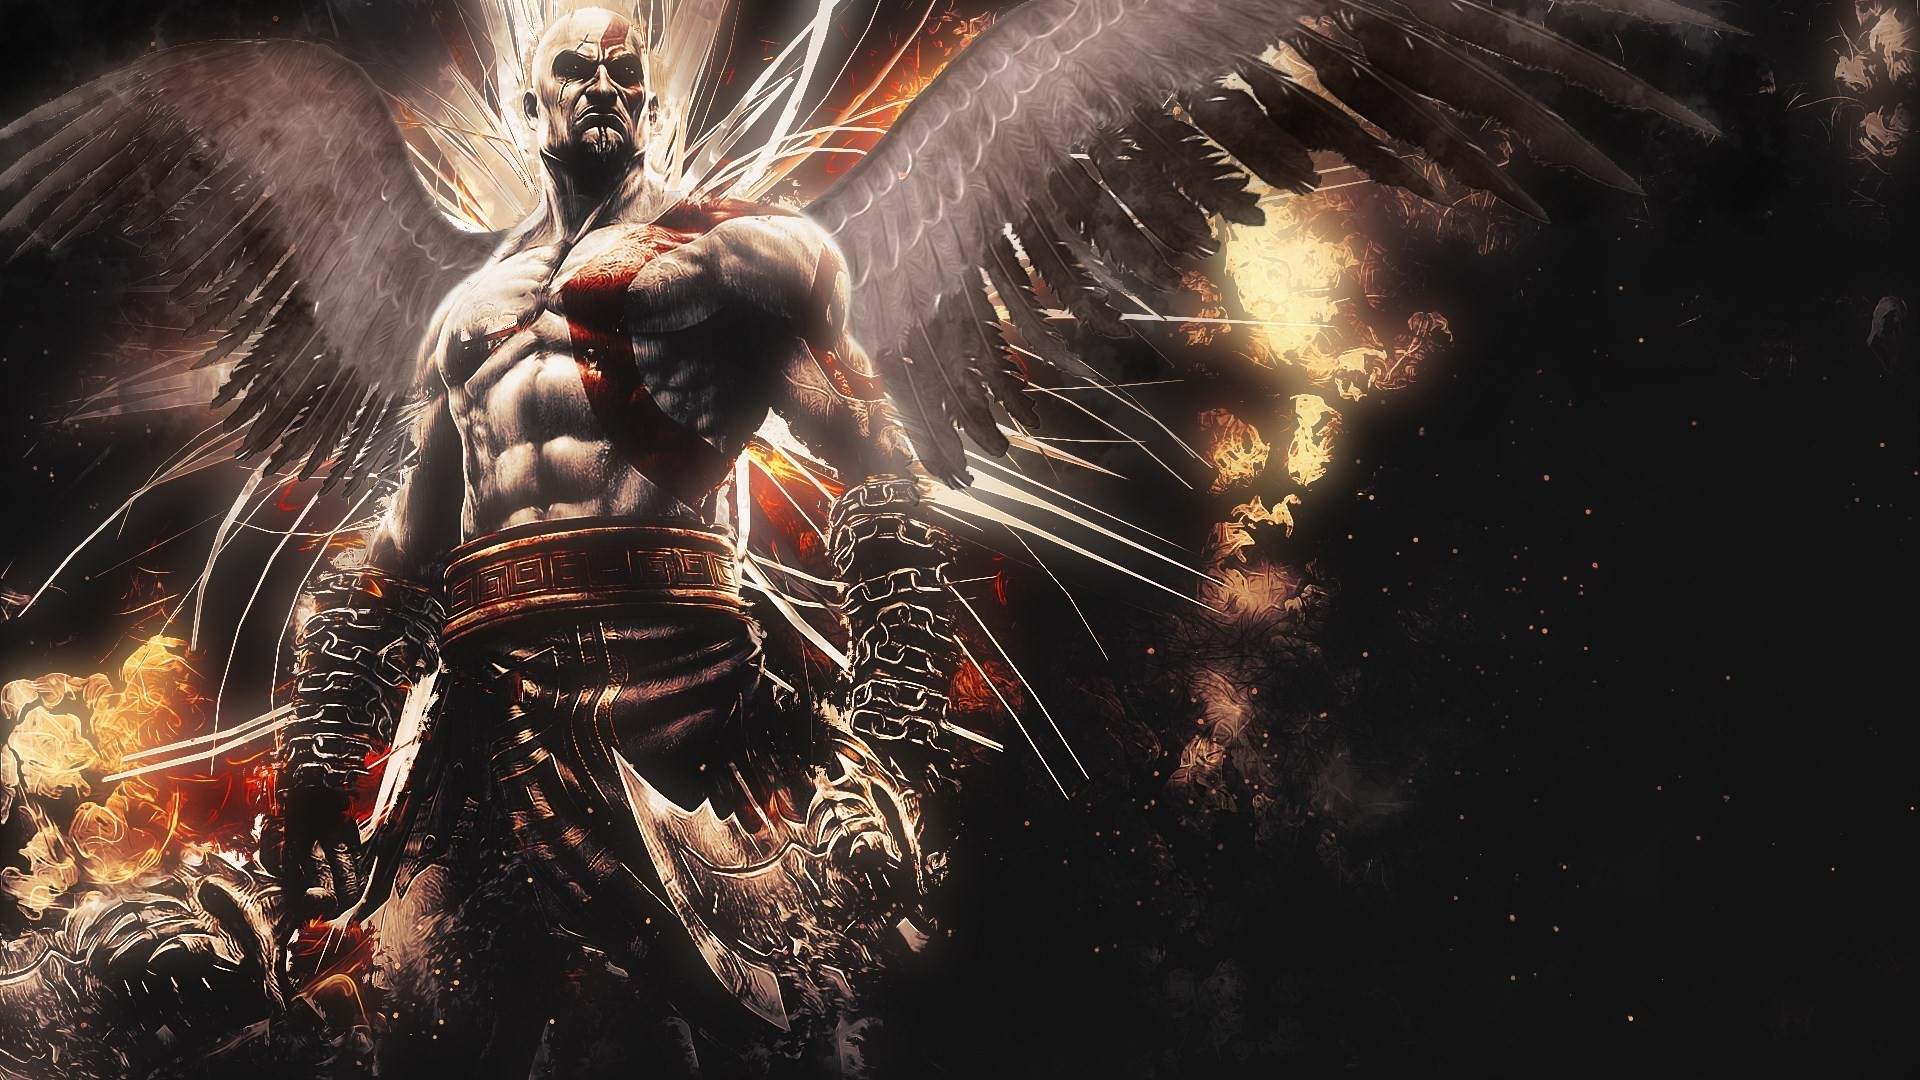 1920x1080 4 God Of War: Ghost Of Sparta HD Wallpapers | Backgrounds - Wallpaper Abyss